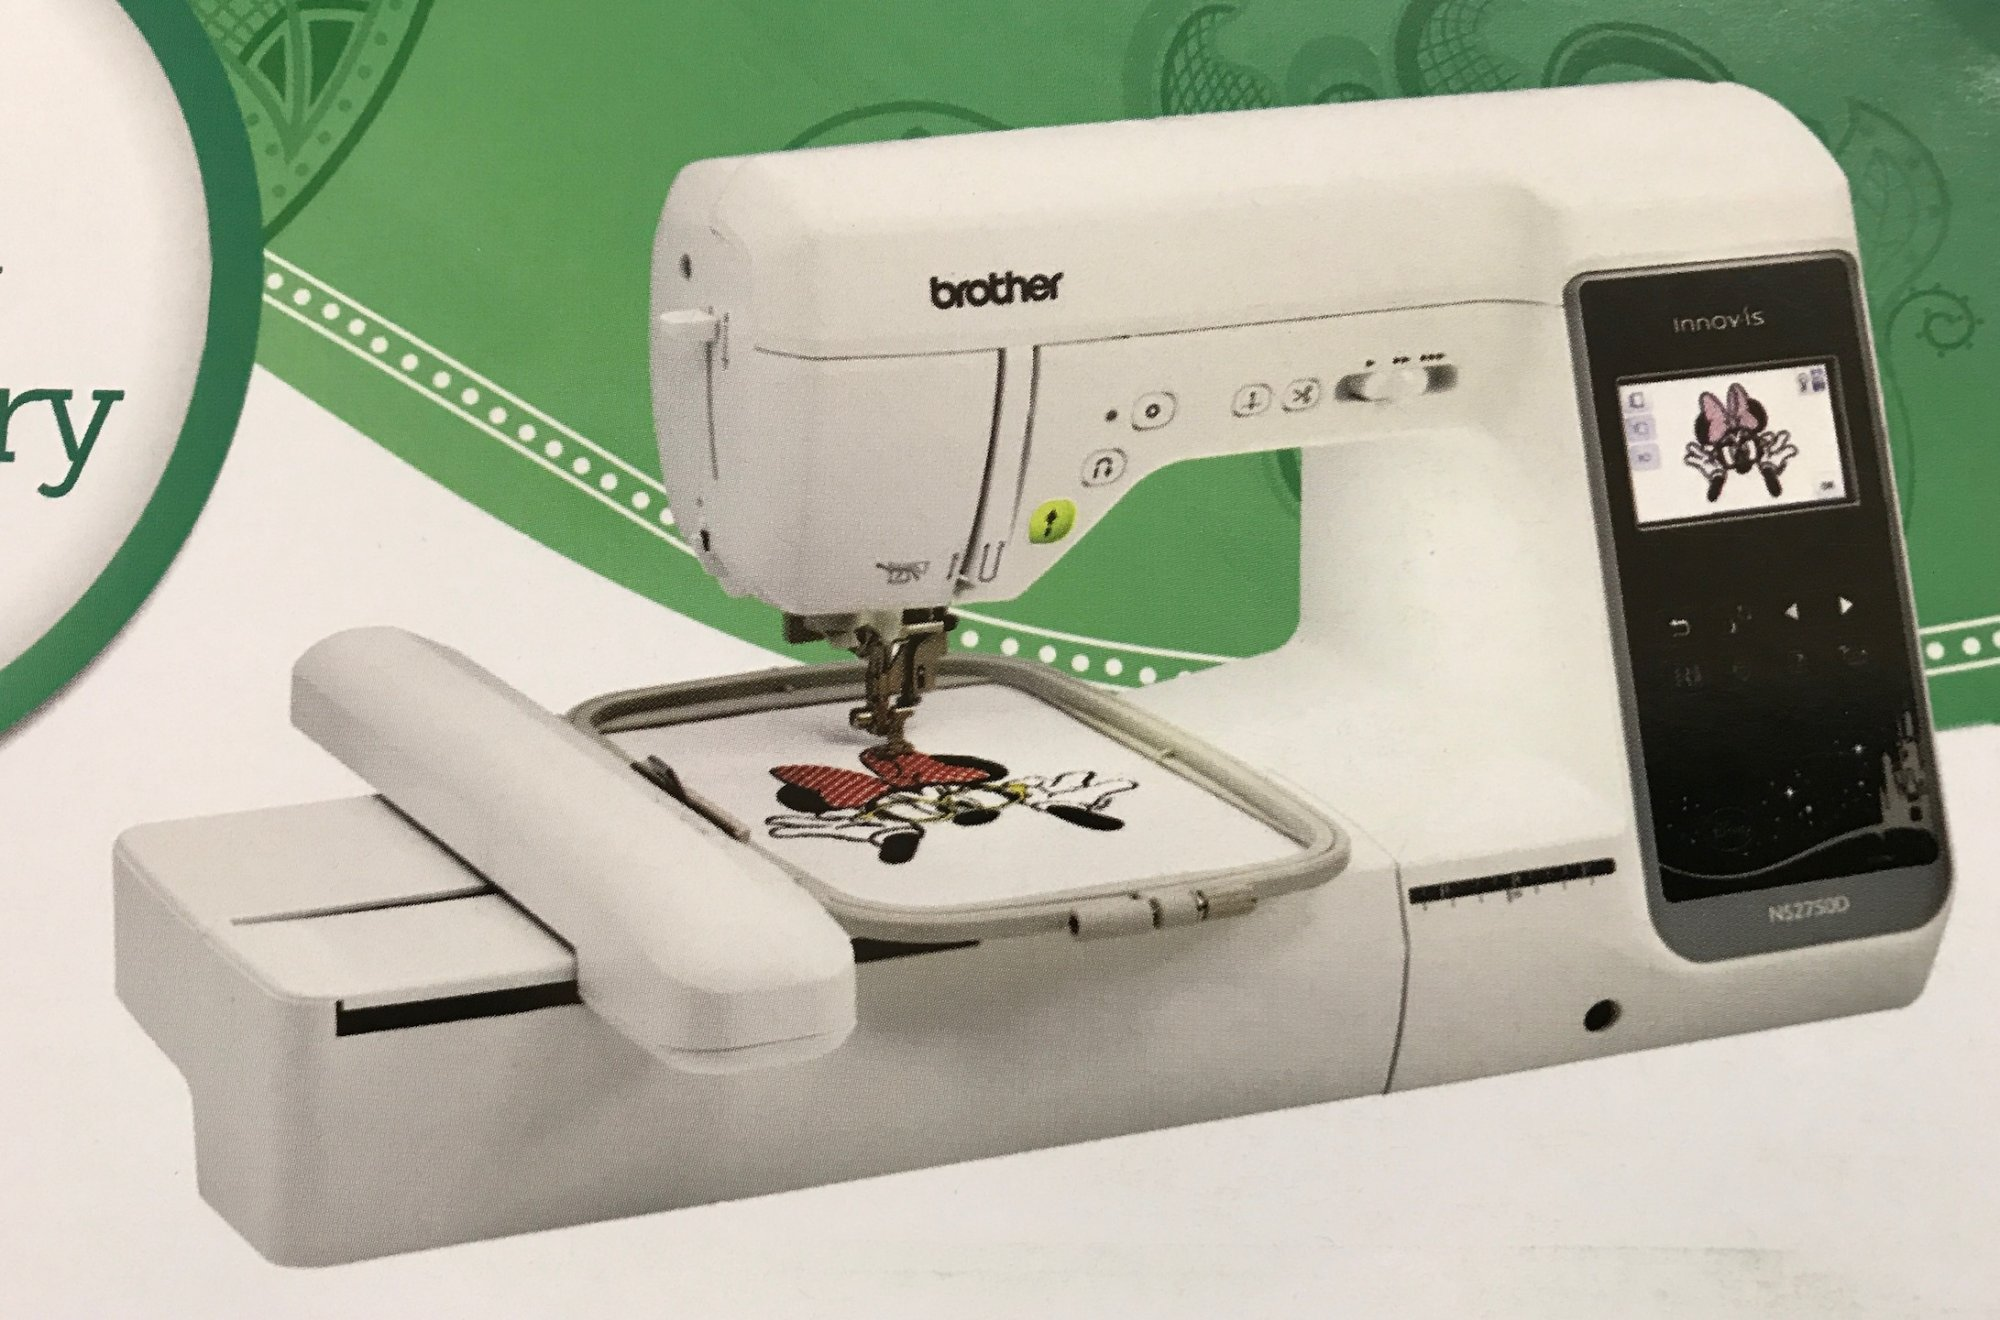 Innov-is NS2750D Sewing & Embroidery Machine